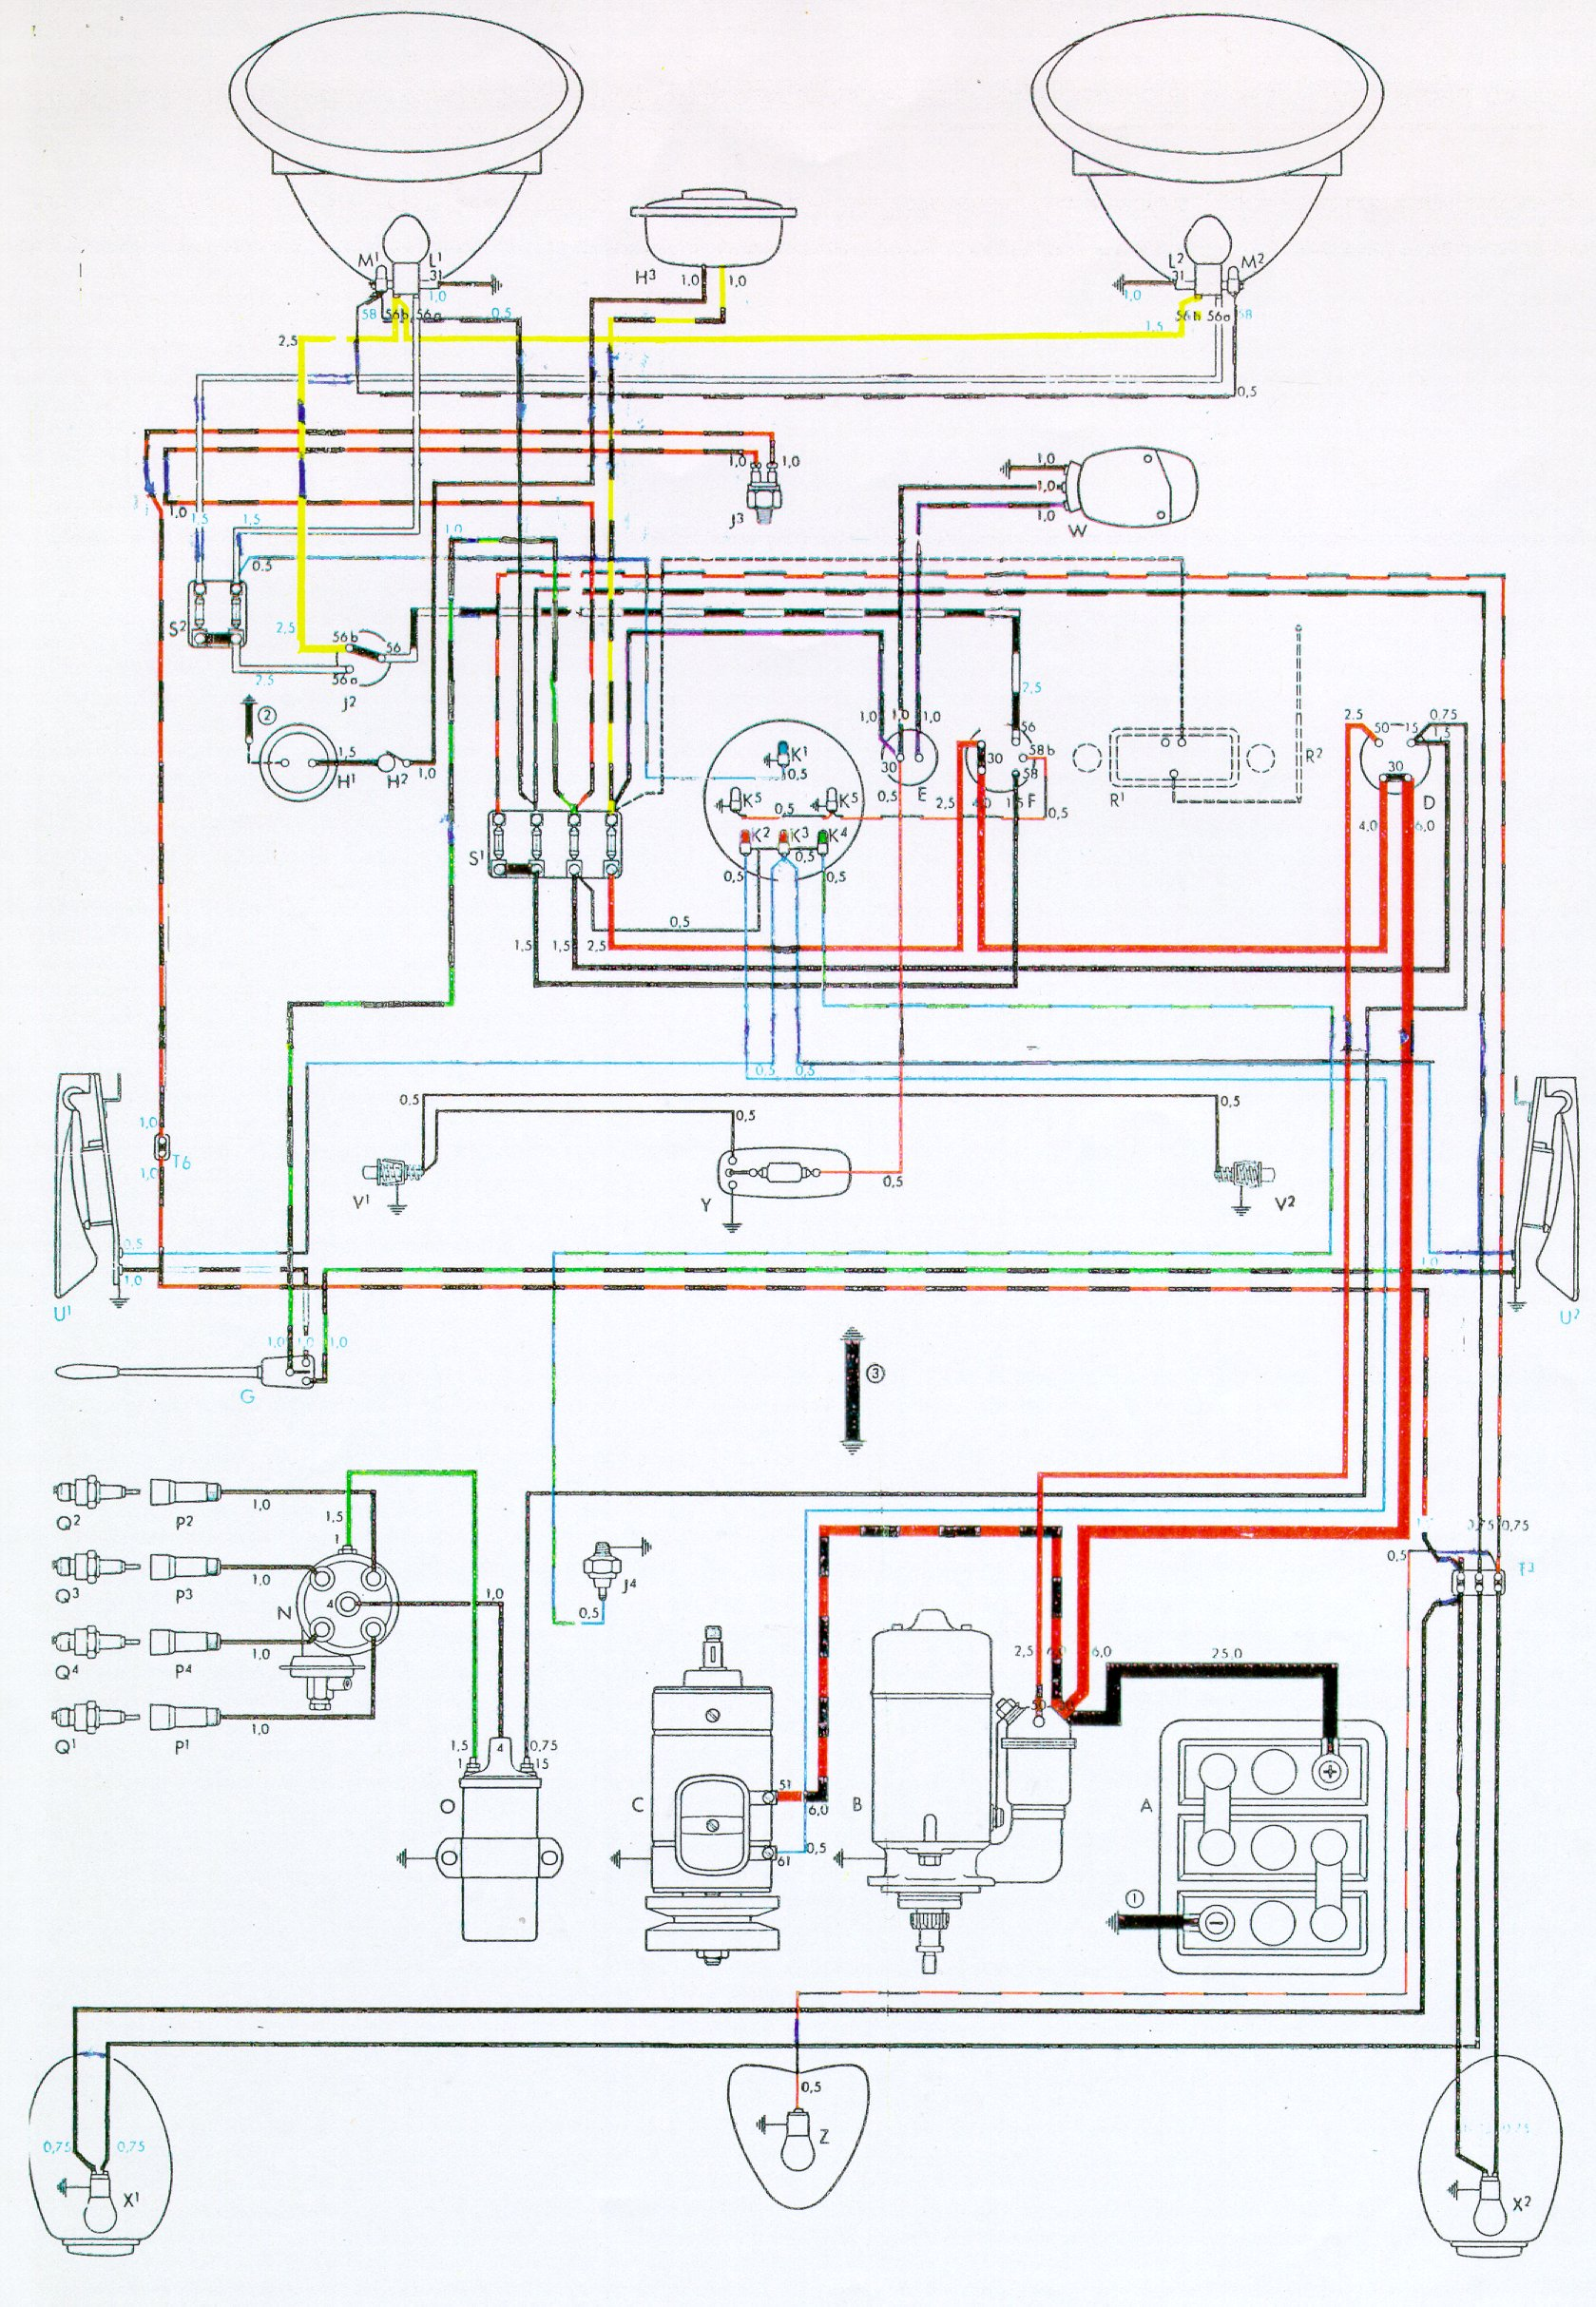 vw bus 1966 wiring diagram data wiring diagrams \u2022 1963 vw bug wiring-diagram vintagebus com vw bus and other wiring diagrams rh vintagebus com 1969 vw beetle wiring diagram 1968 vw wiring diagram